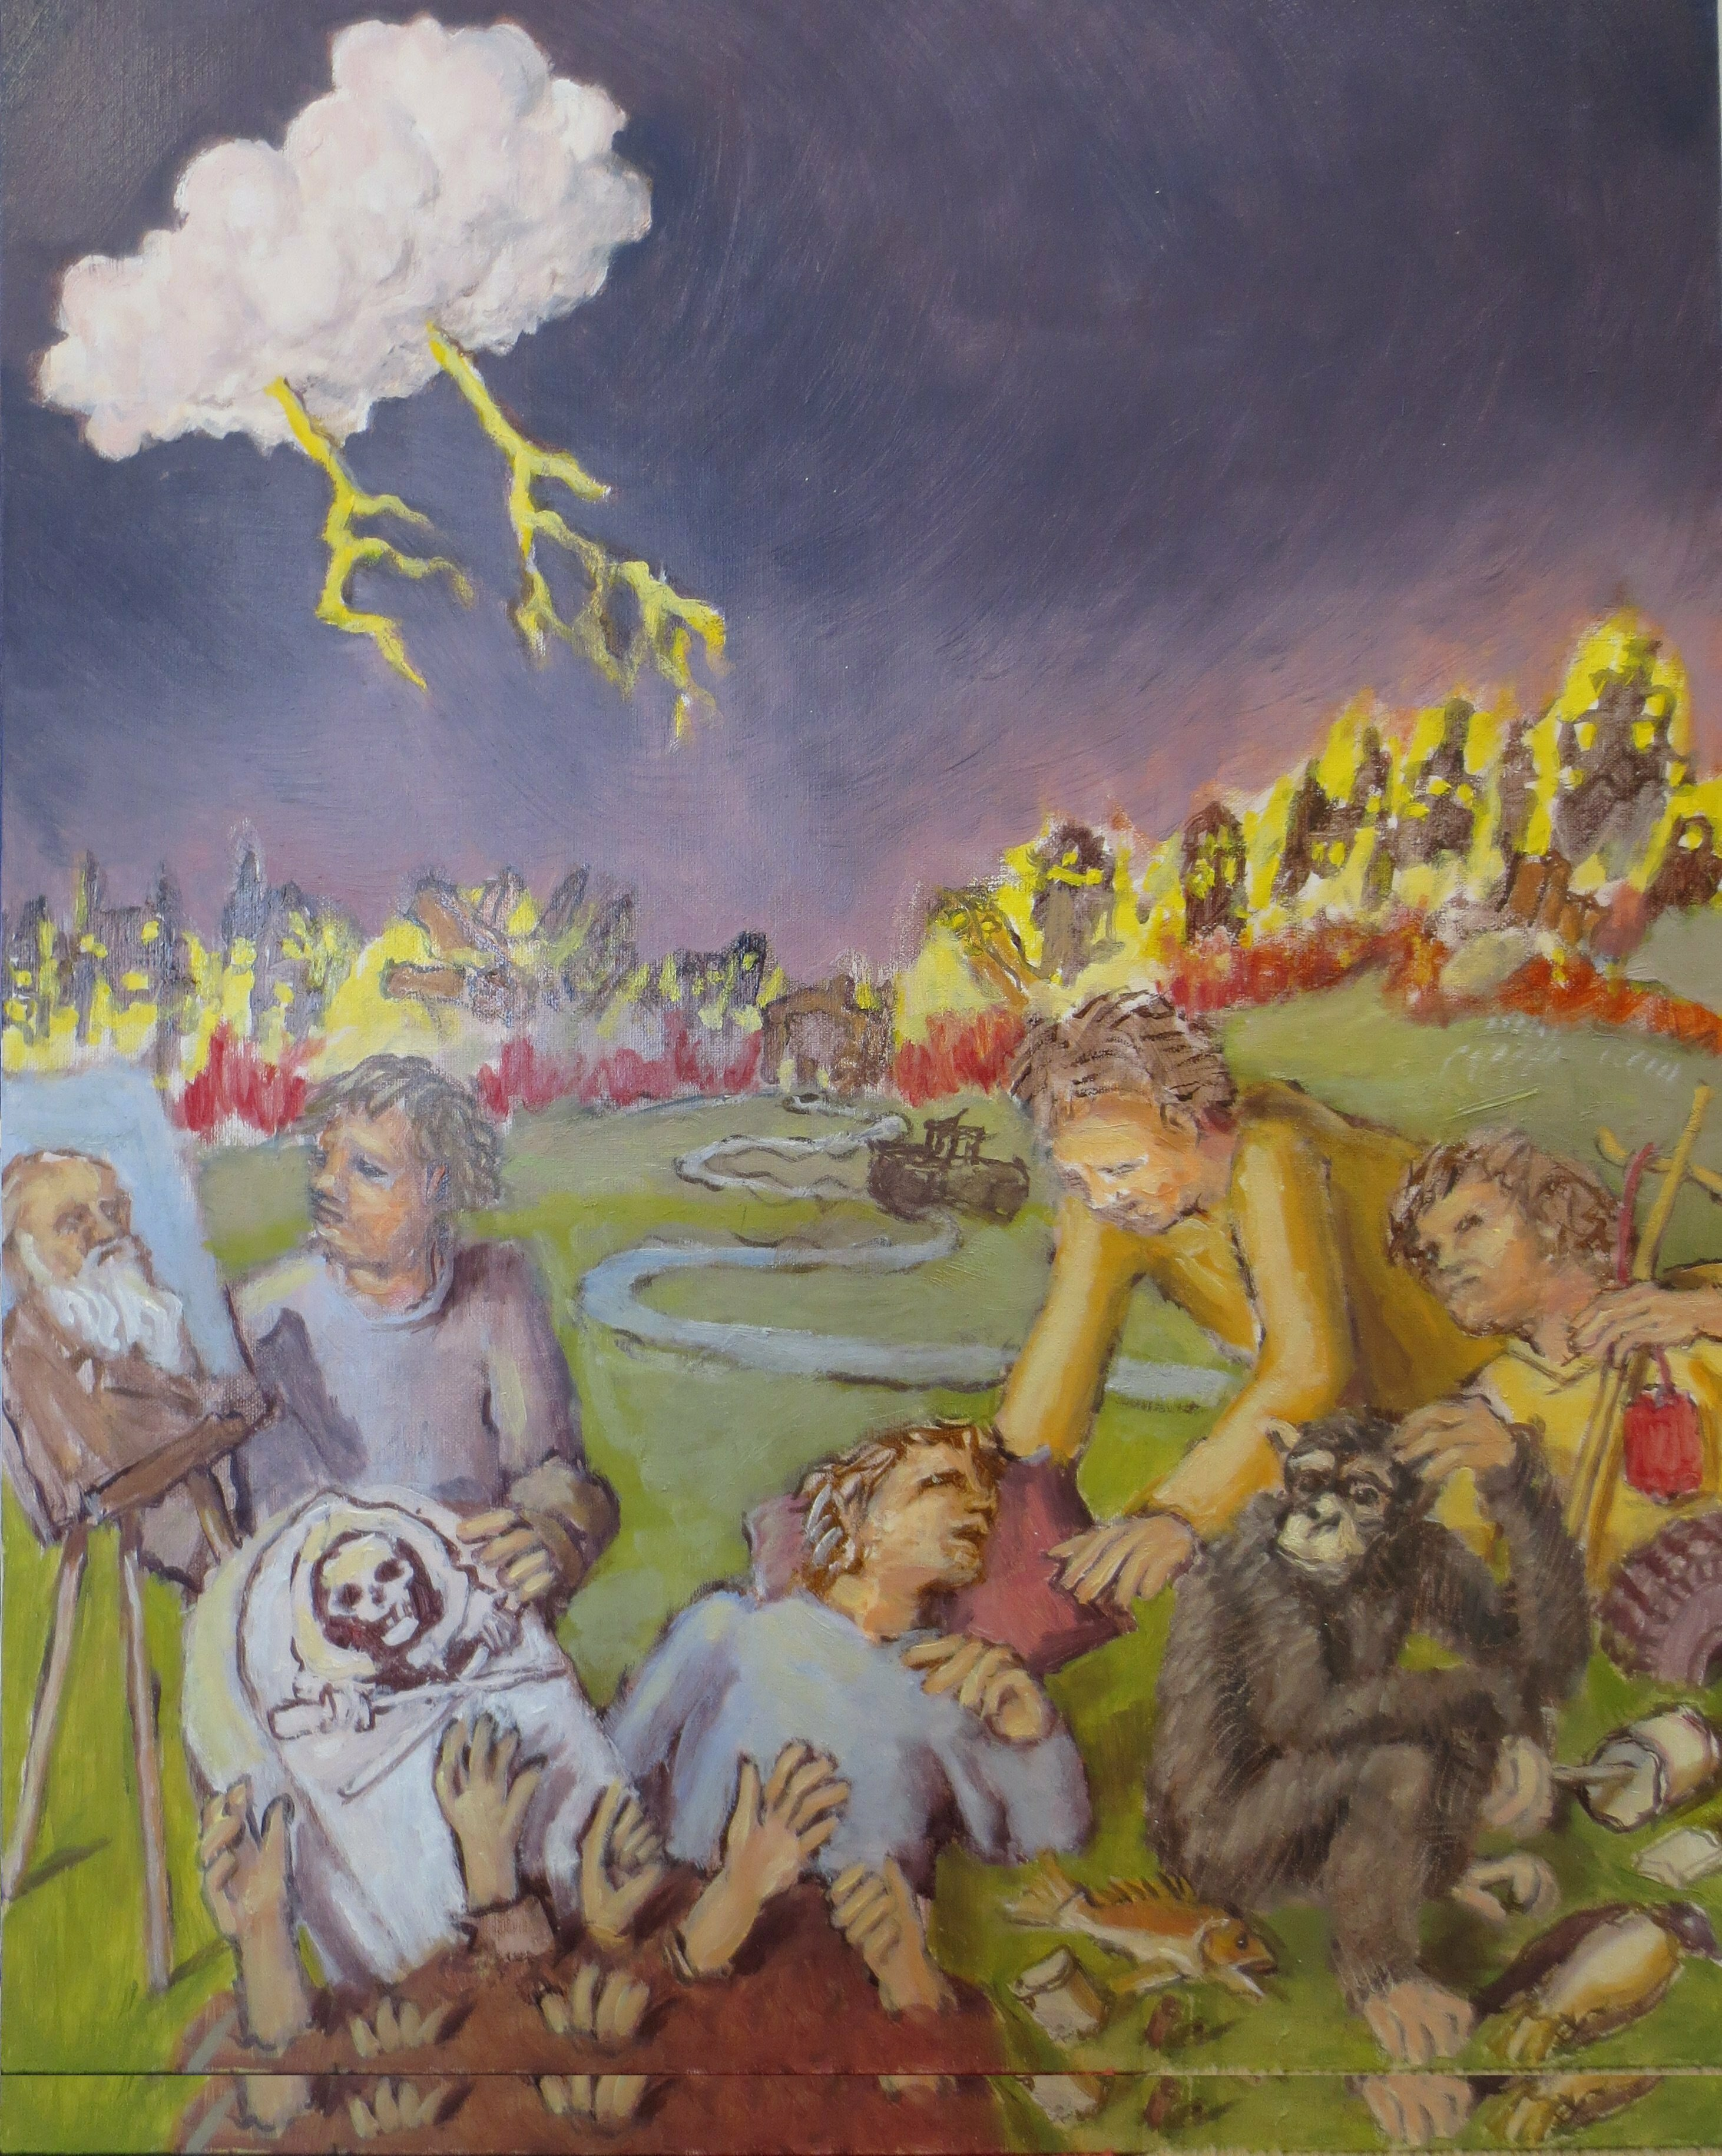 Wendy Lippincott: 'the road to hell', 2020 Oil Painting, Ecological. The Road to Hell is Paved with Good Intentions...